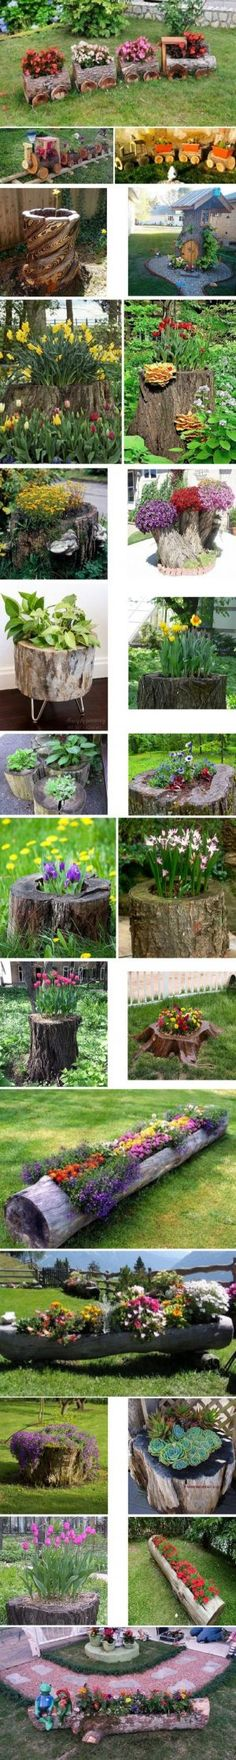 24 Tree Stumps Turned Into Beautiful Flower Planters